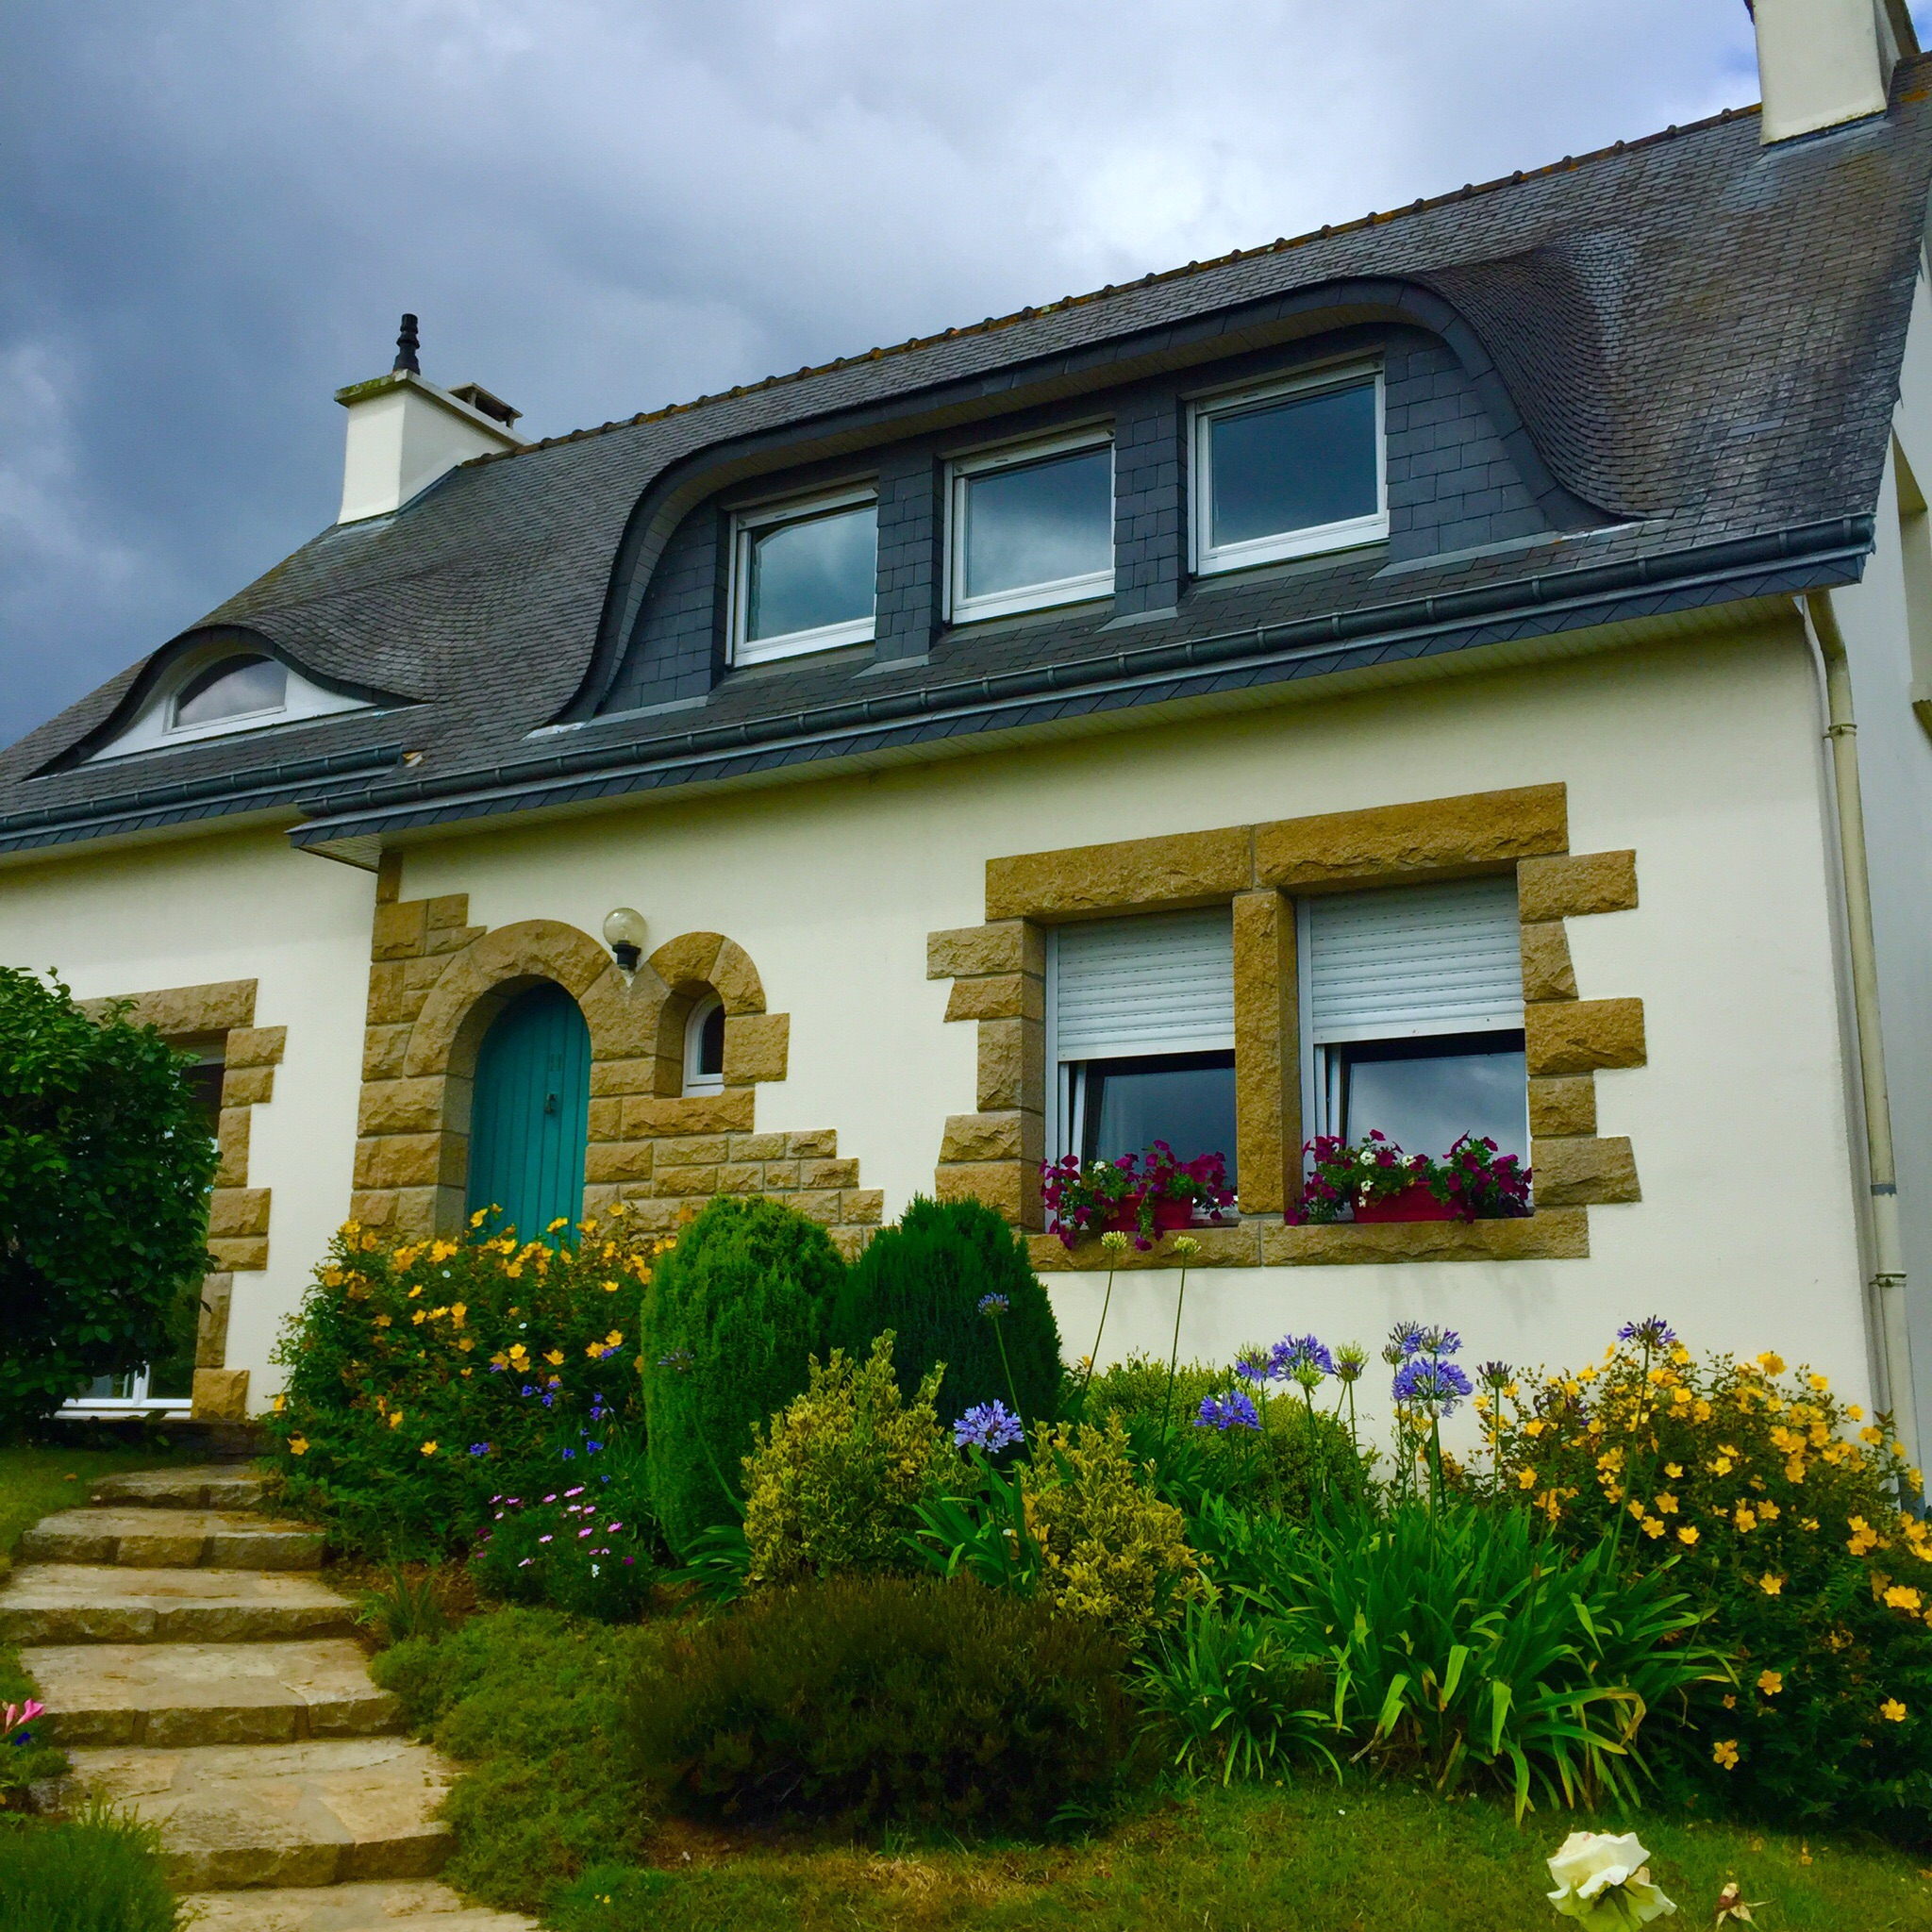 A typical Breton house in Brittany--rounded door, white walls, stone accents, and such charm